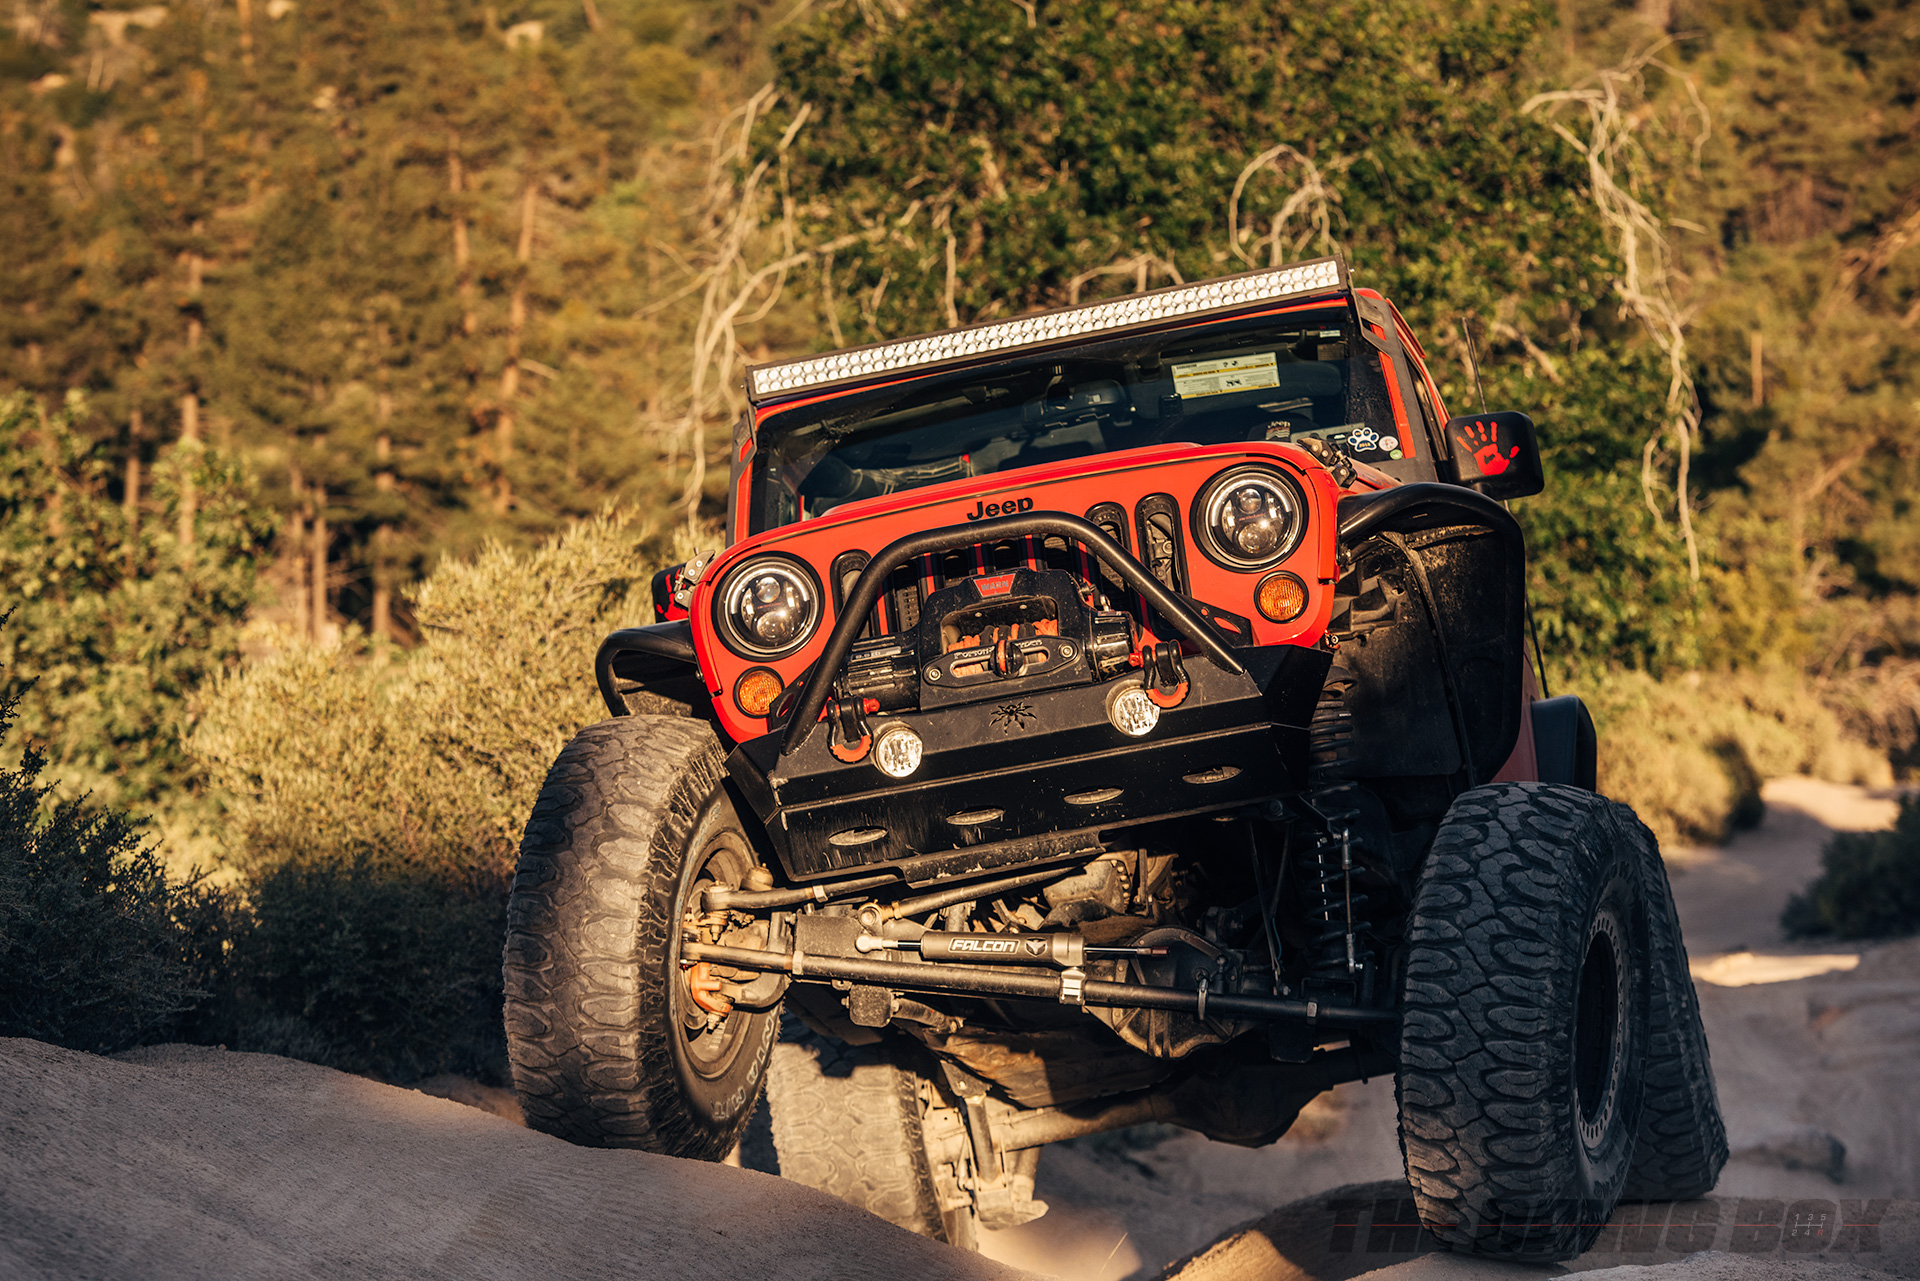 Shot of the Falcon suspension system on a Red-Orange Jeep Wrangler Moab